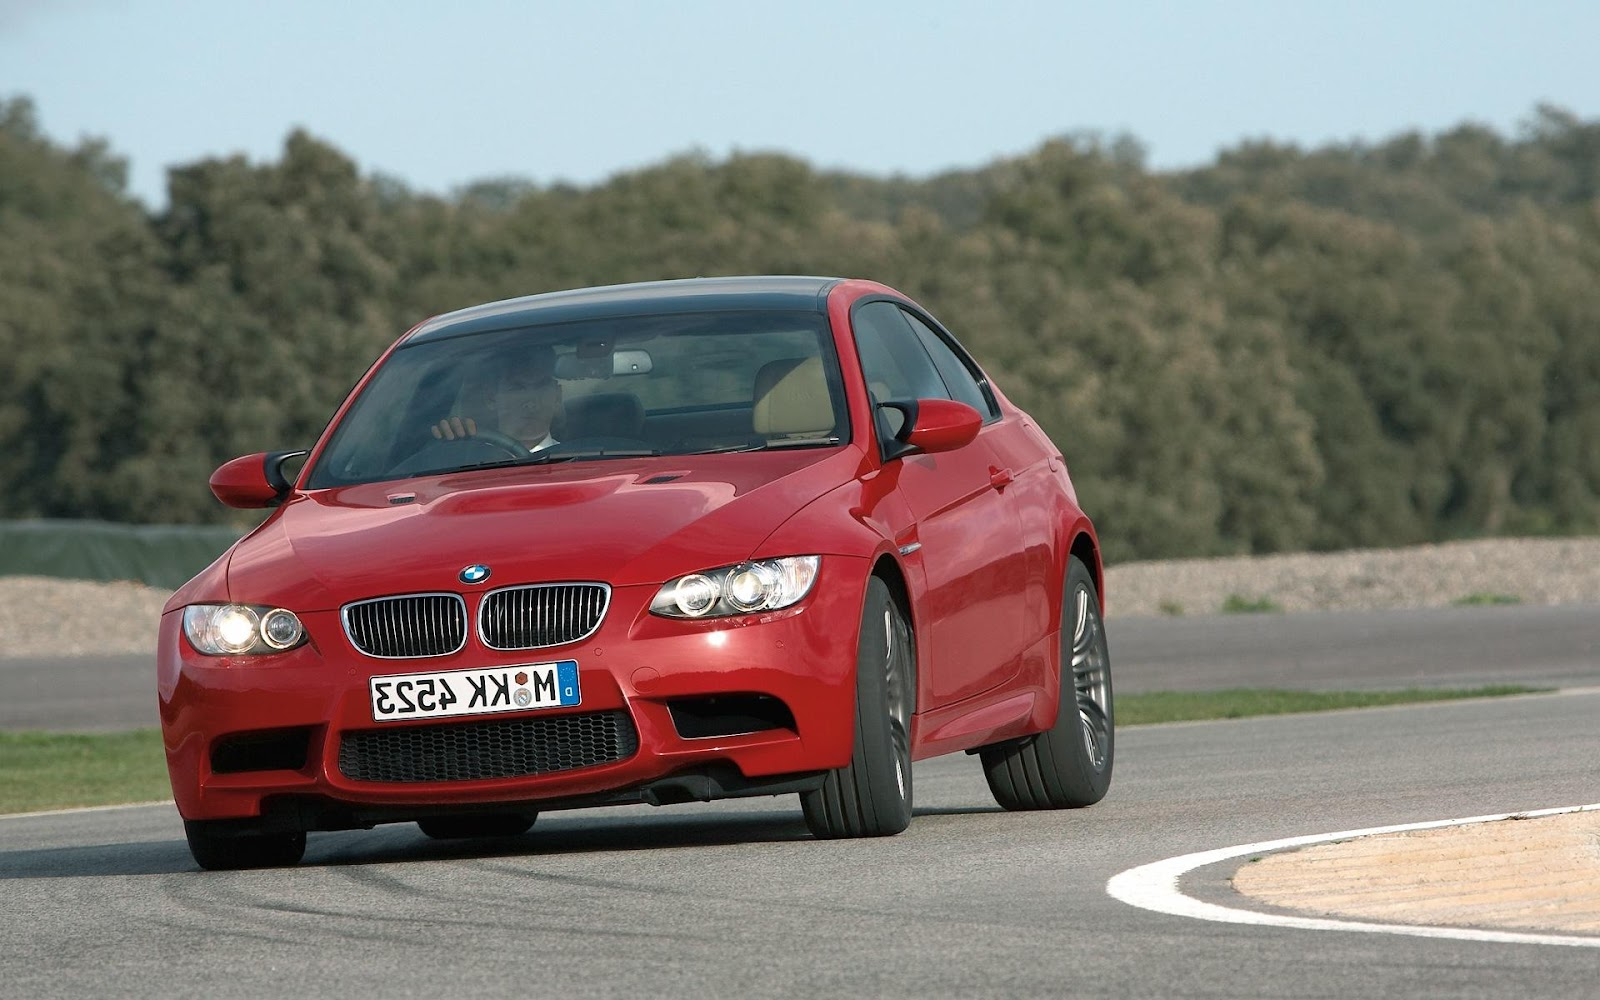 BMW M3 Coupe 2008 Wallpaper at